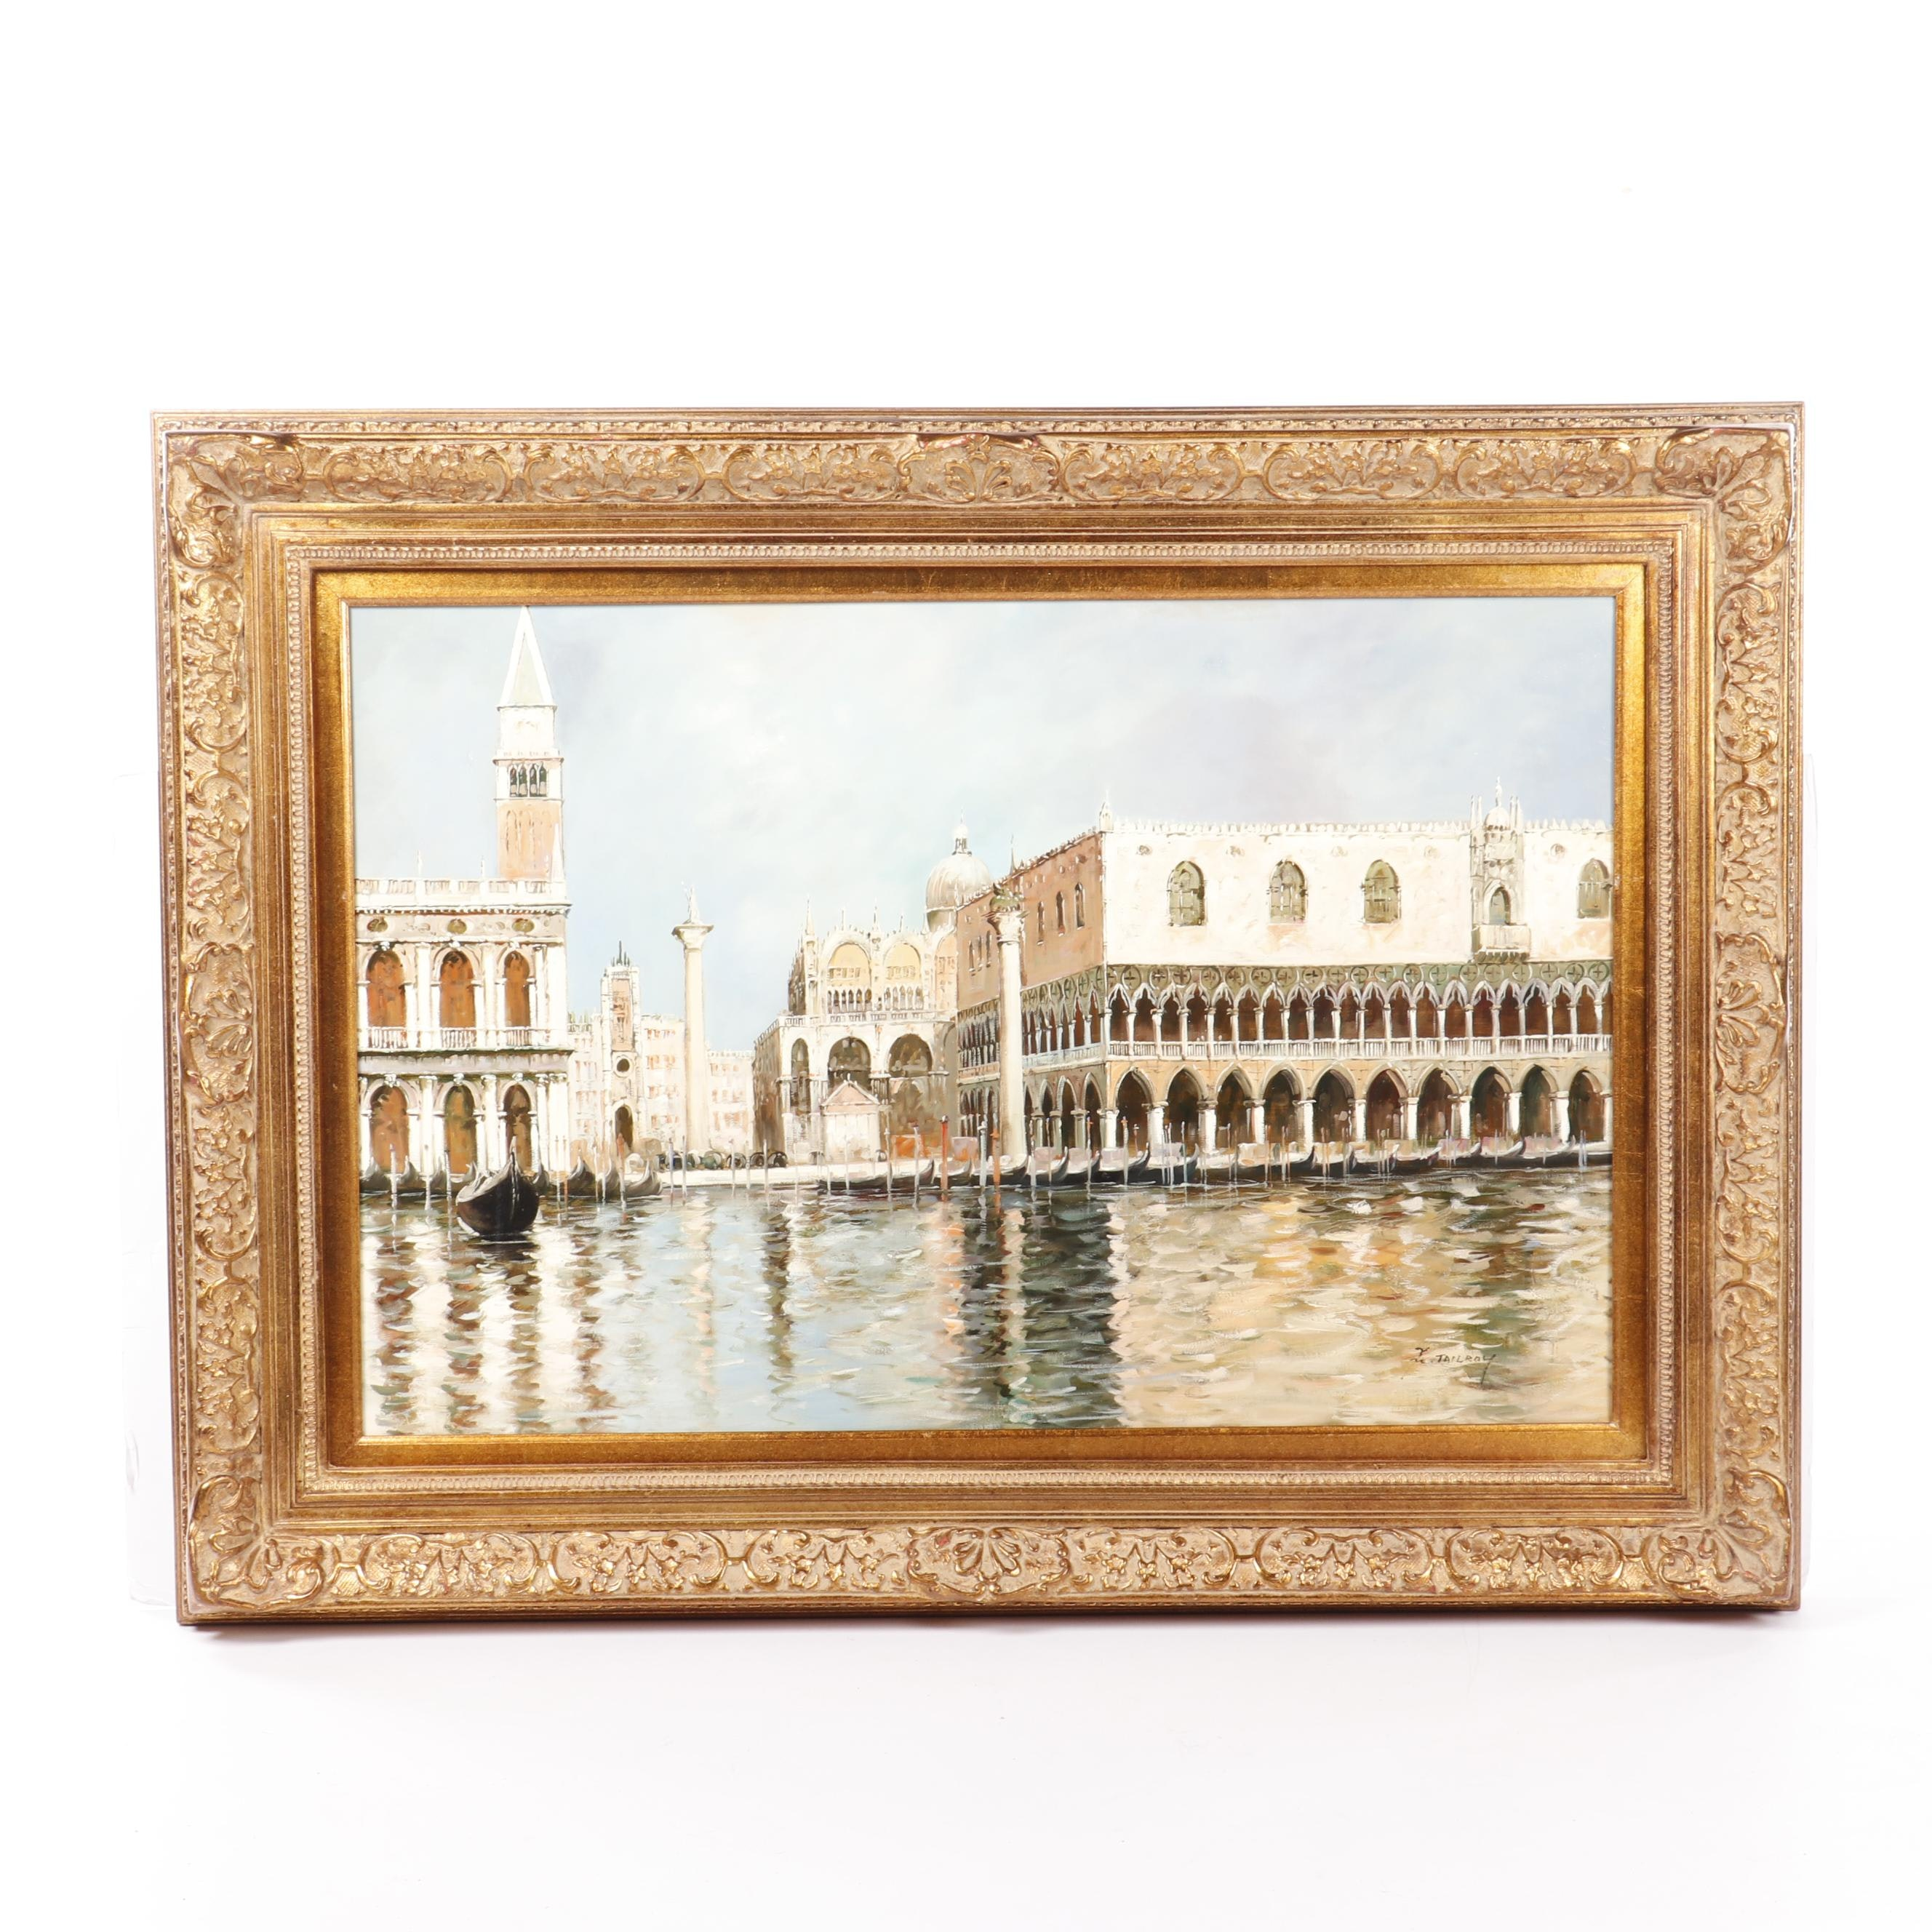 F. Tailroy Oil Painting of Venetian Canal